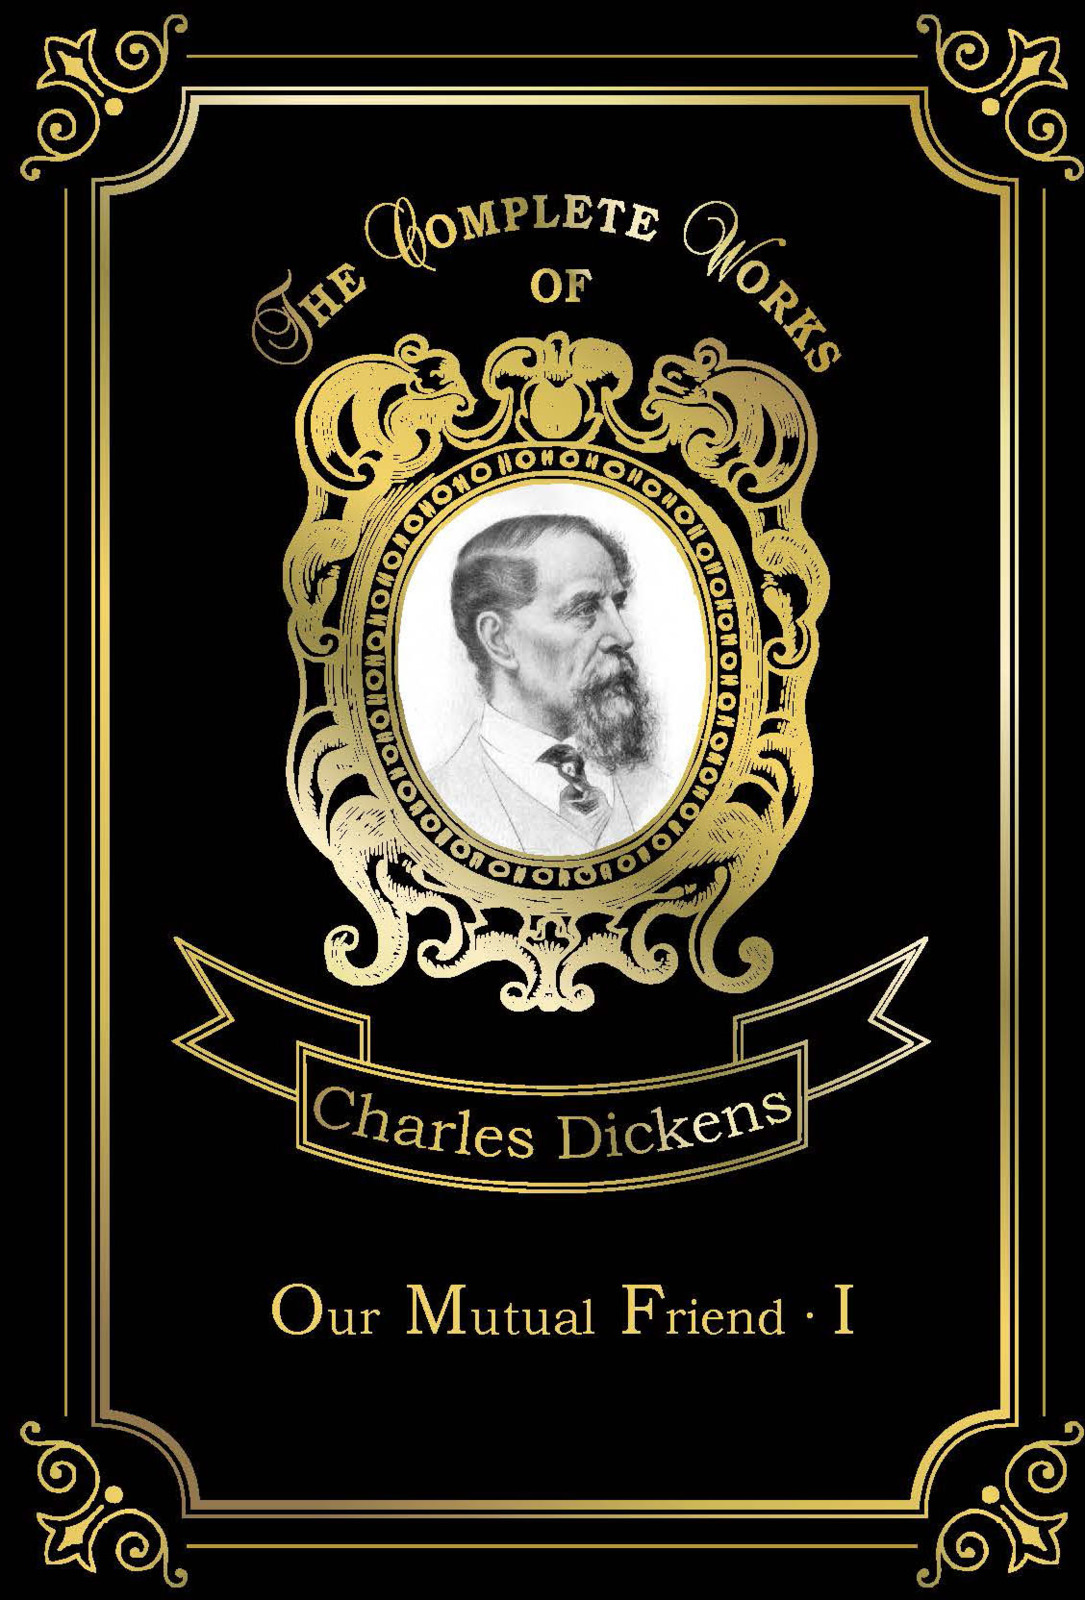 Charles Dickens Our Mutual Friend I charles dickens our mutual friend i